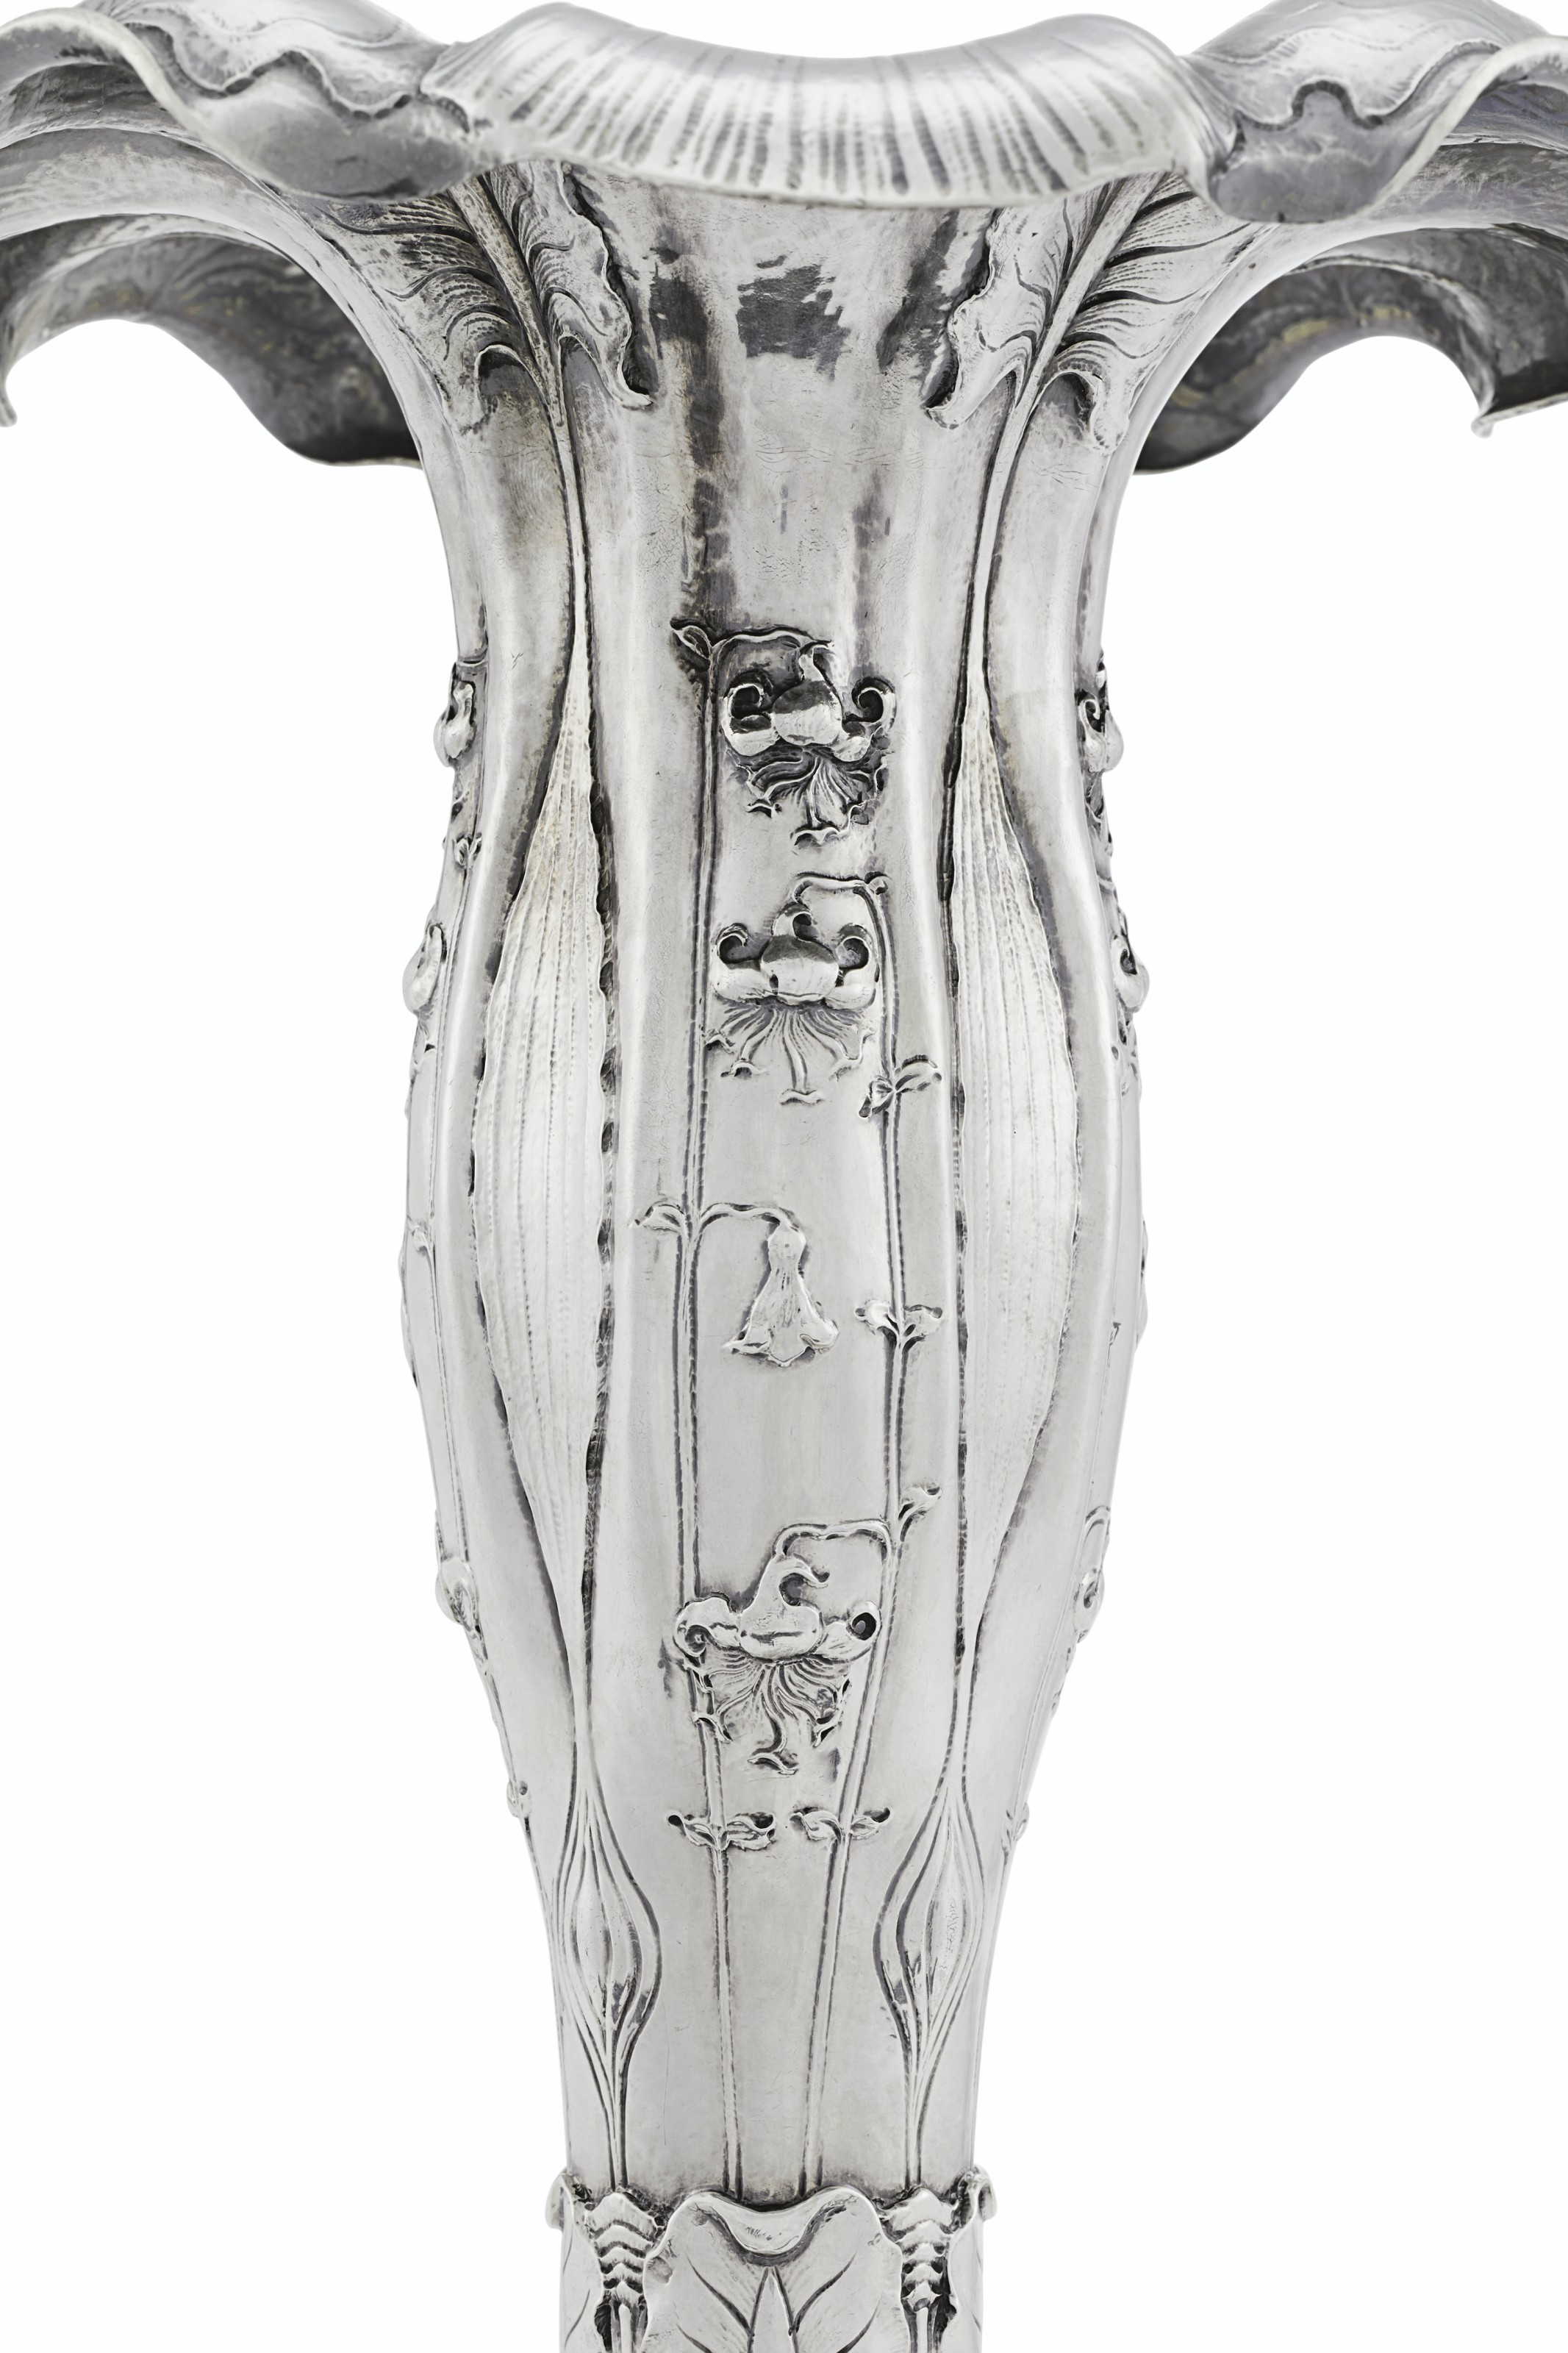 1900 PARIS EXPOSITION UNIVERSELLE: A NEAR PAIR OF AMERICAN SILVER VASES